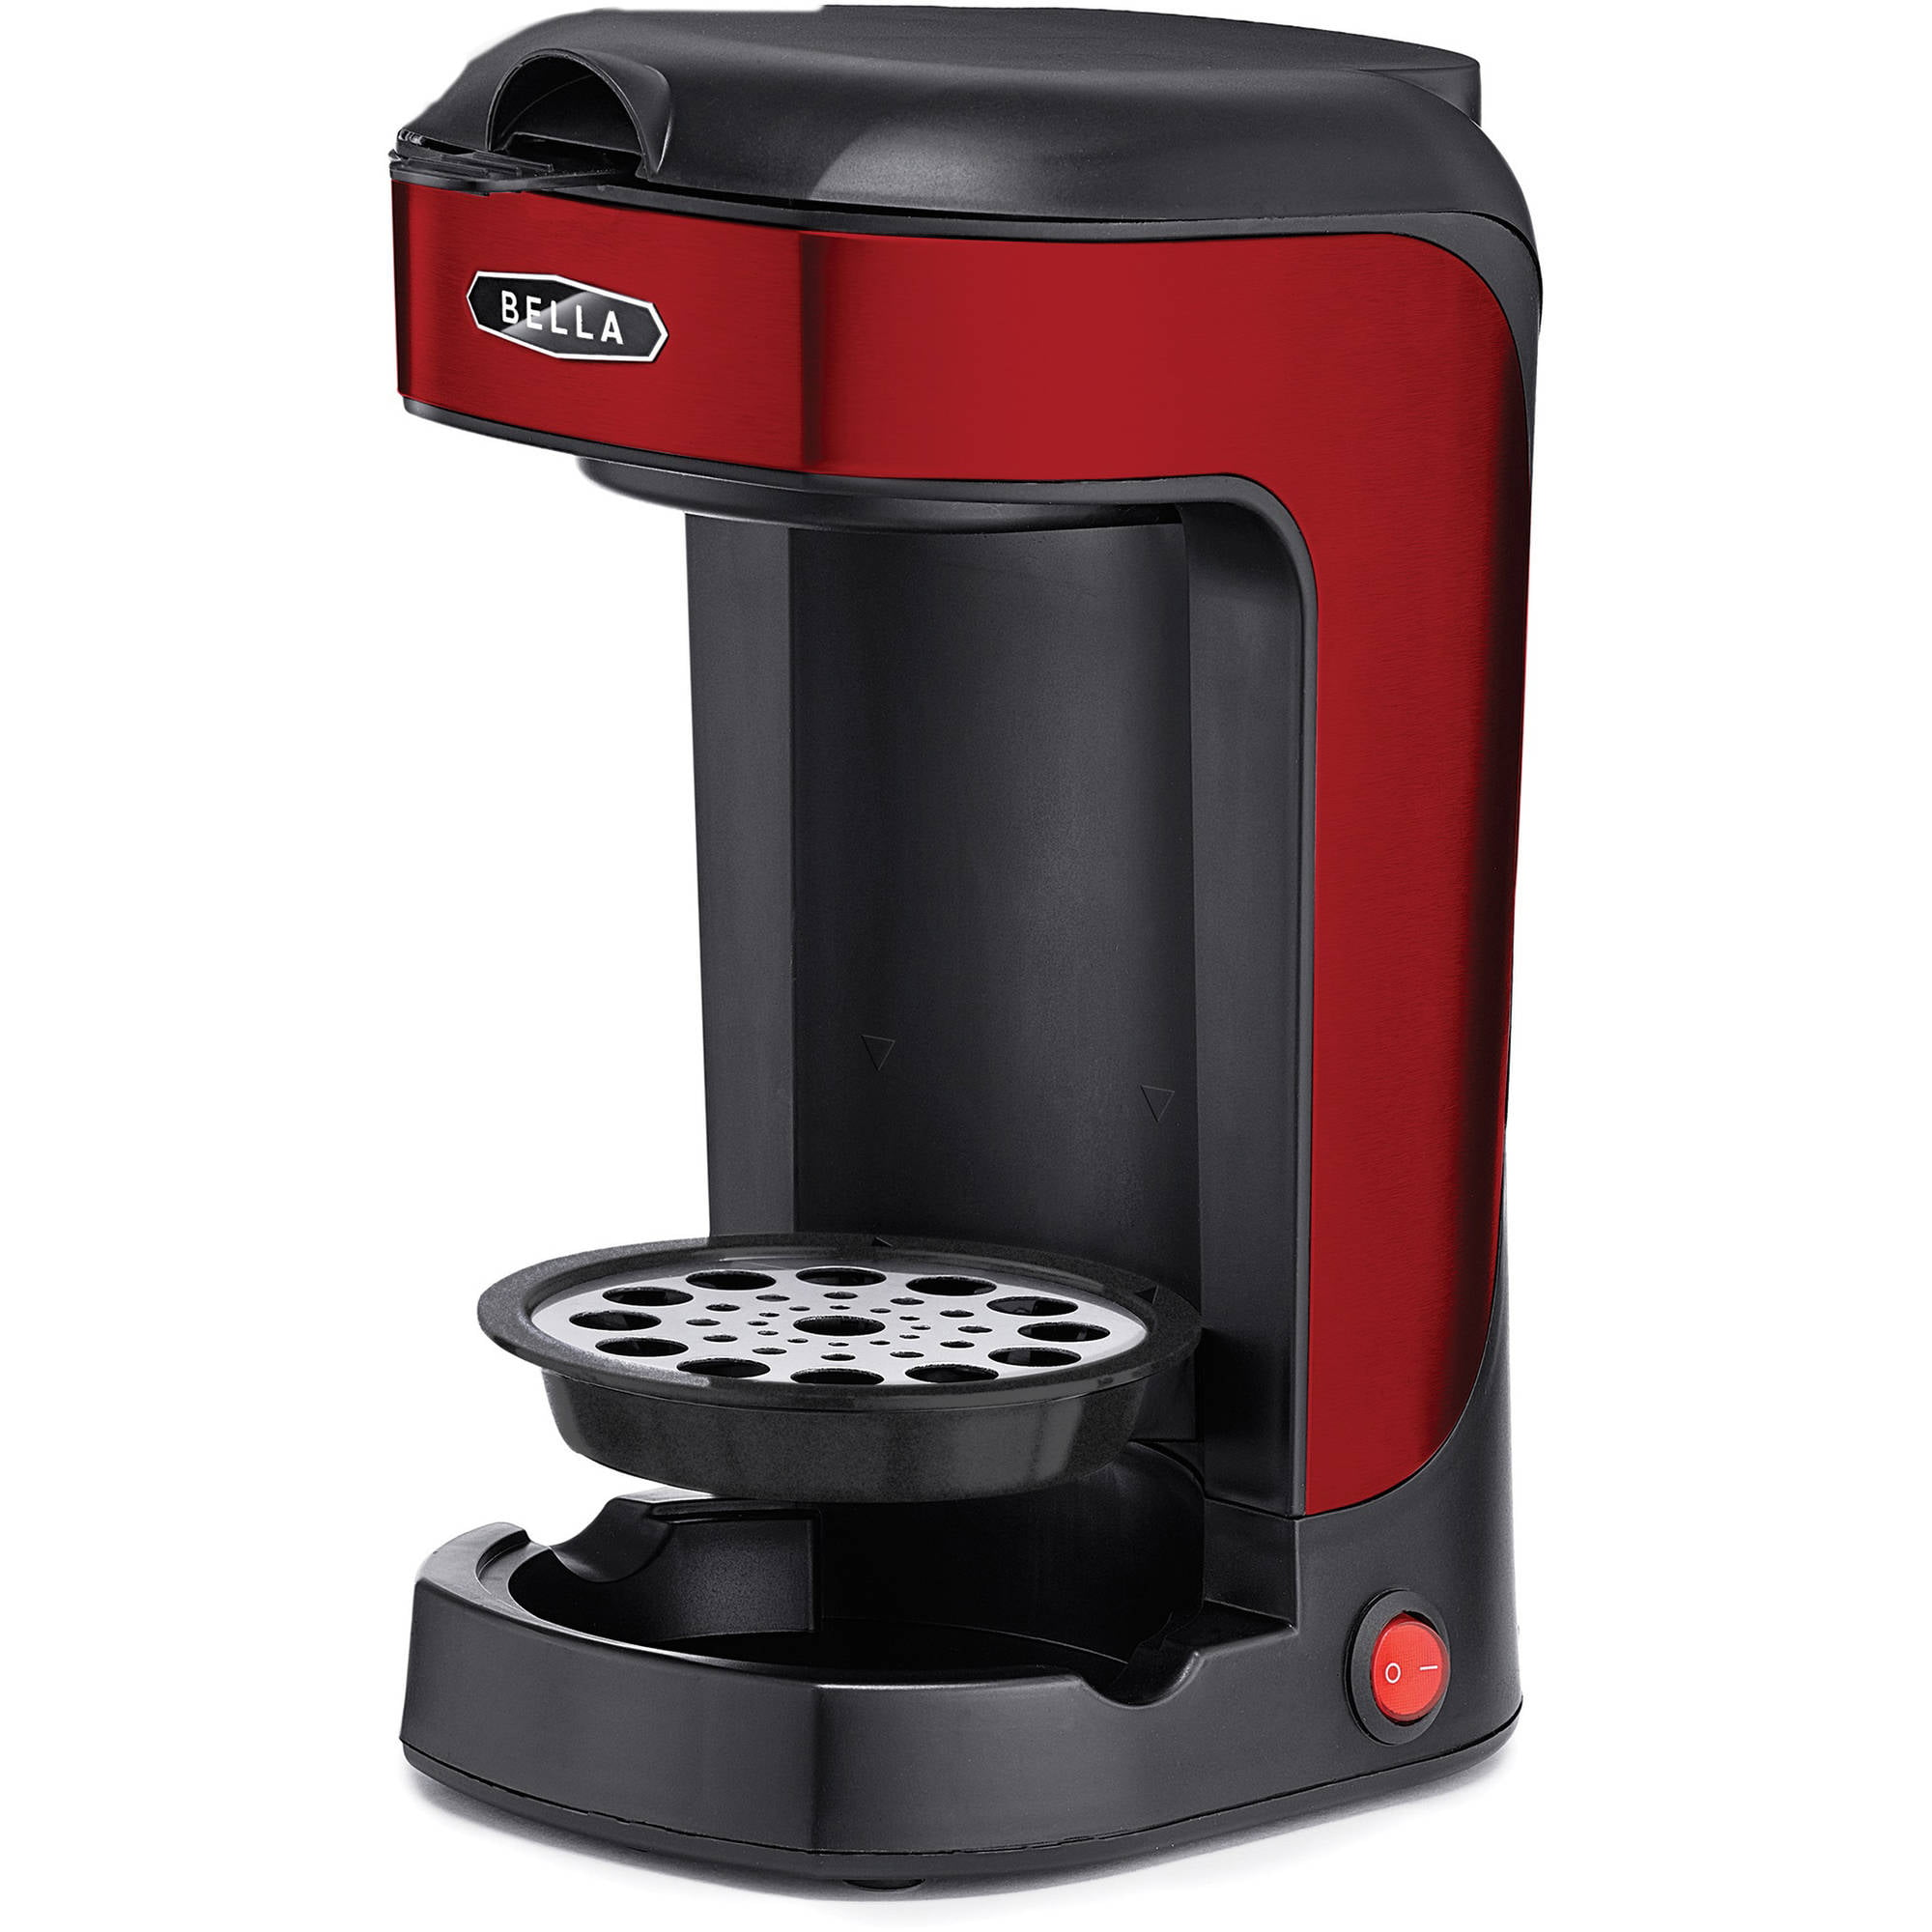 BELLA Single Scoop Coffee Maker, Red by Sensio